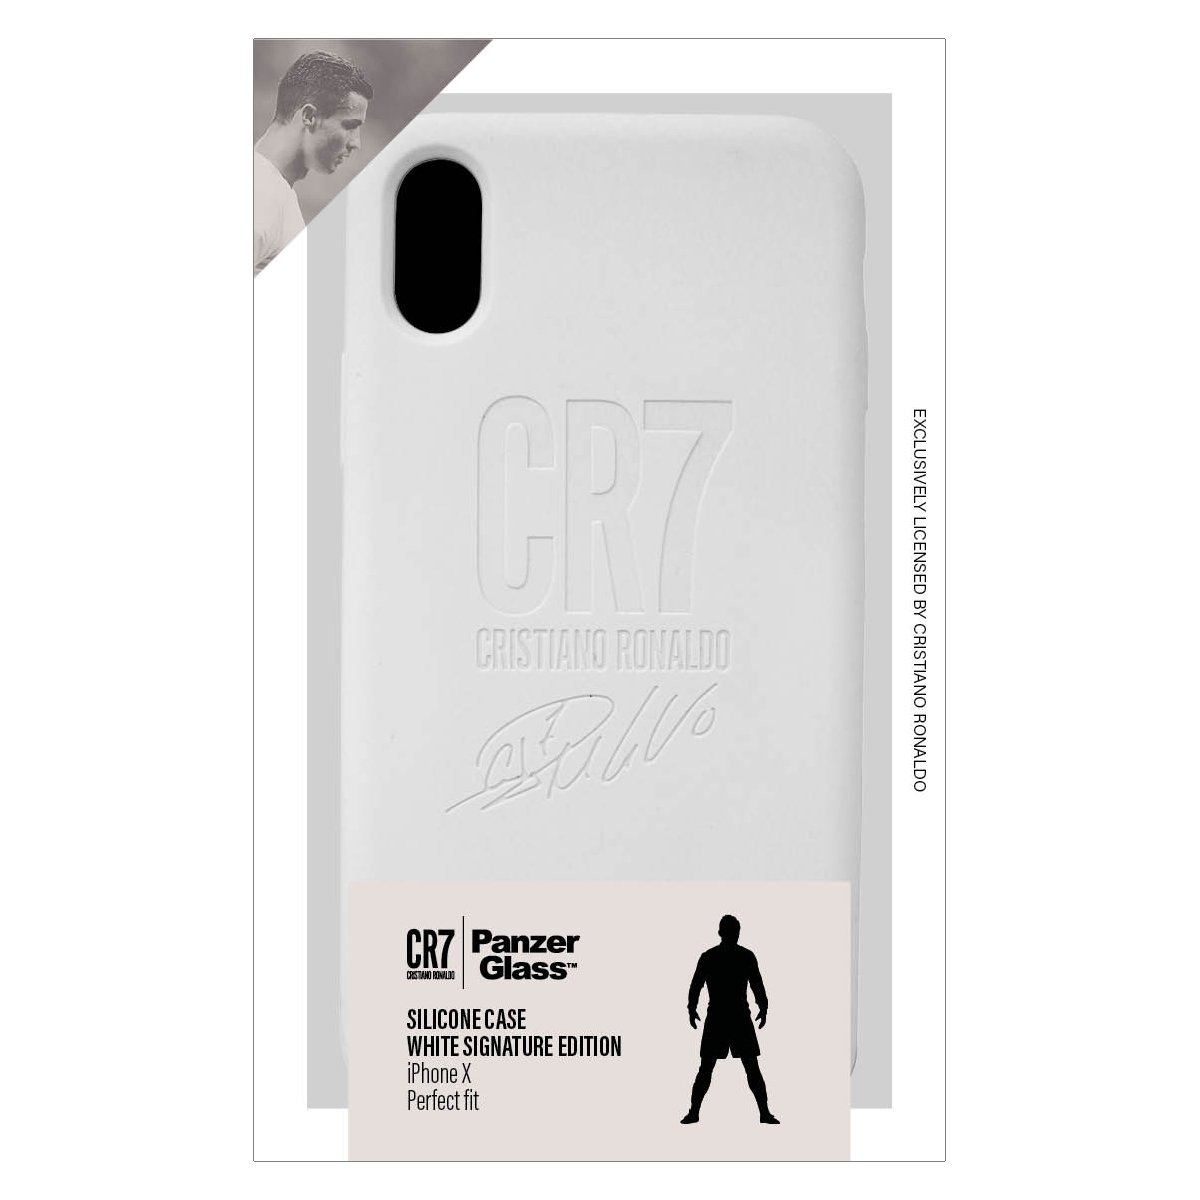 "PanzerGlass 0136 mobile phone case 14.7 cm (5.8"") Cover White"